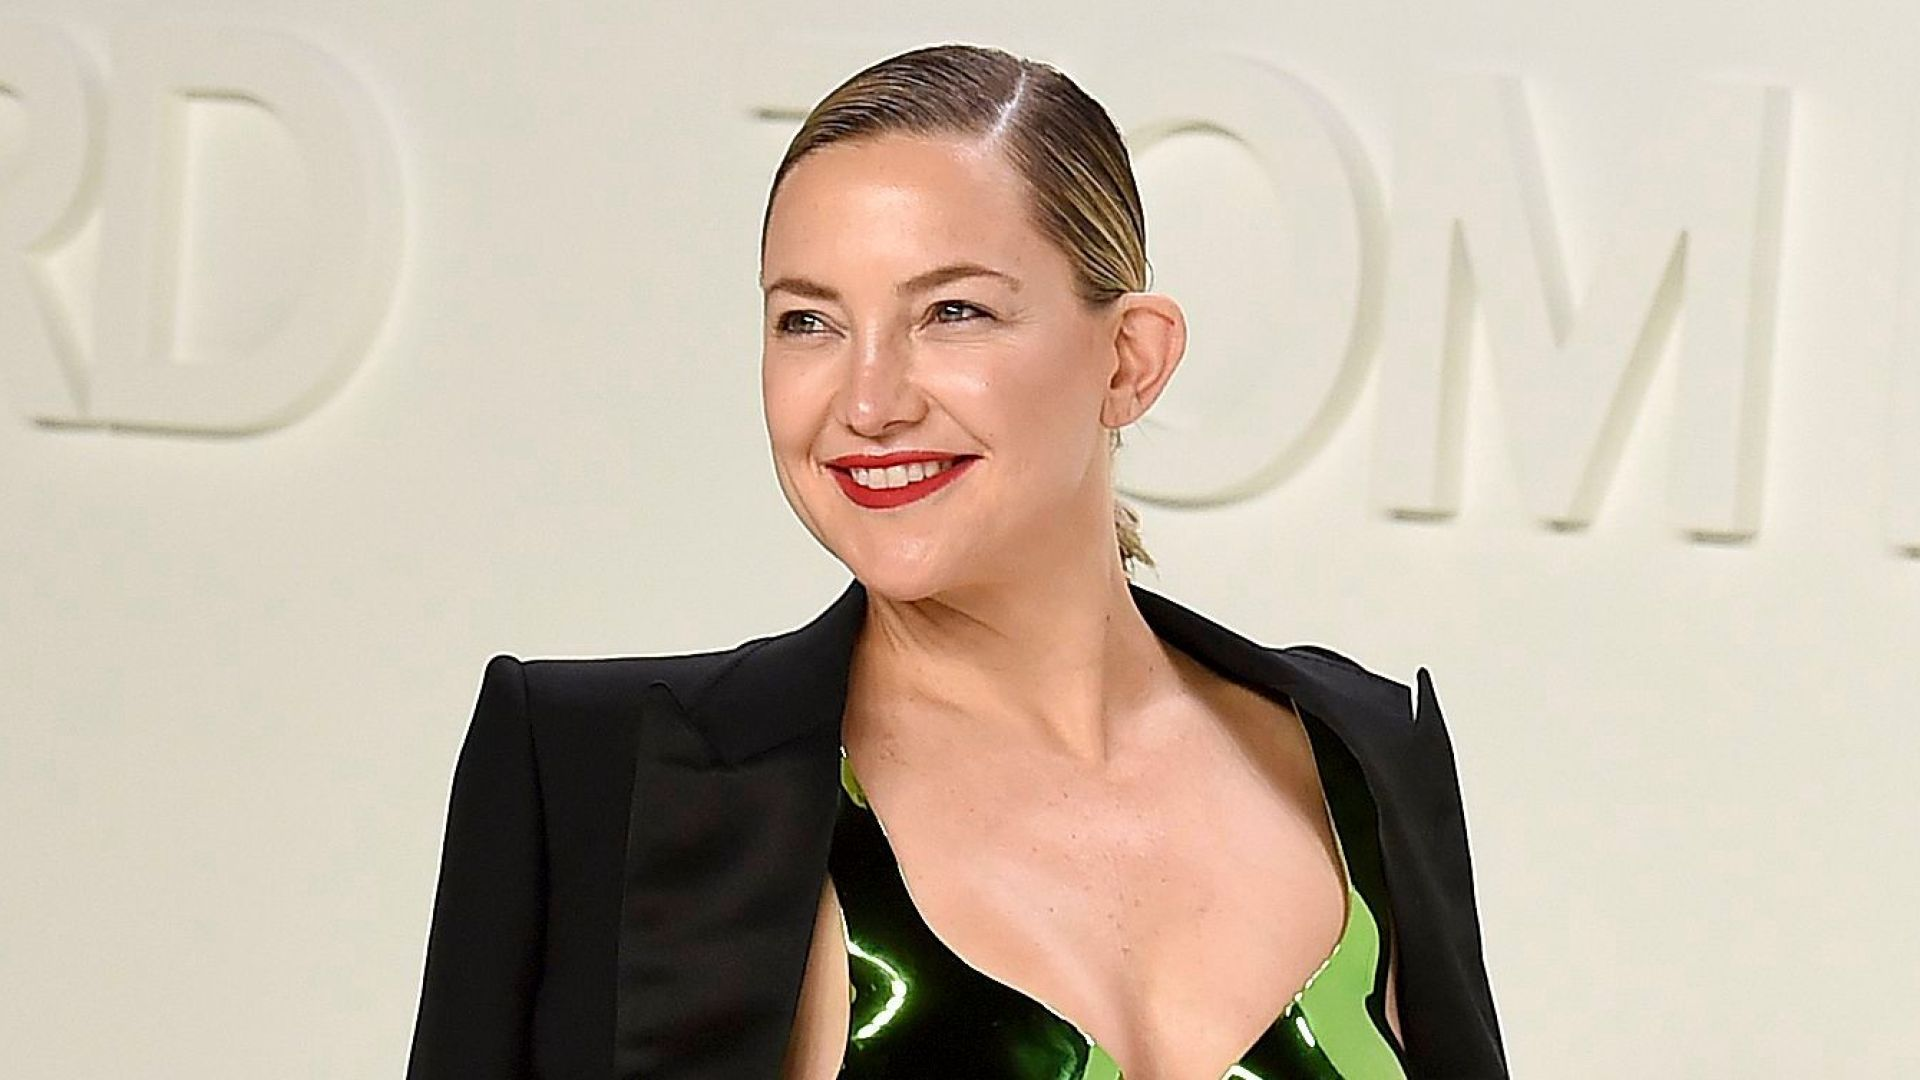 Mom of 3 Kate Hudson Shows Off Fit Figure While Baking Cake at Home: 'I Just Had To'